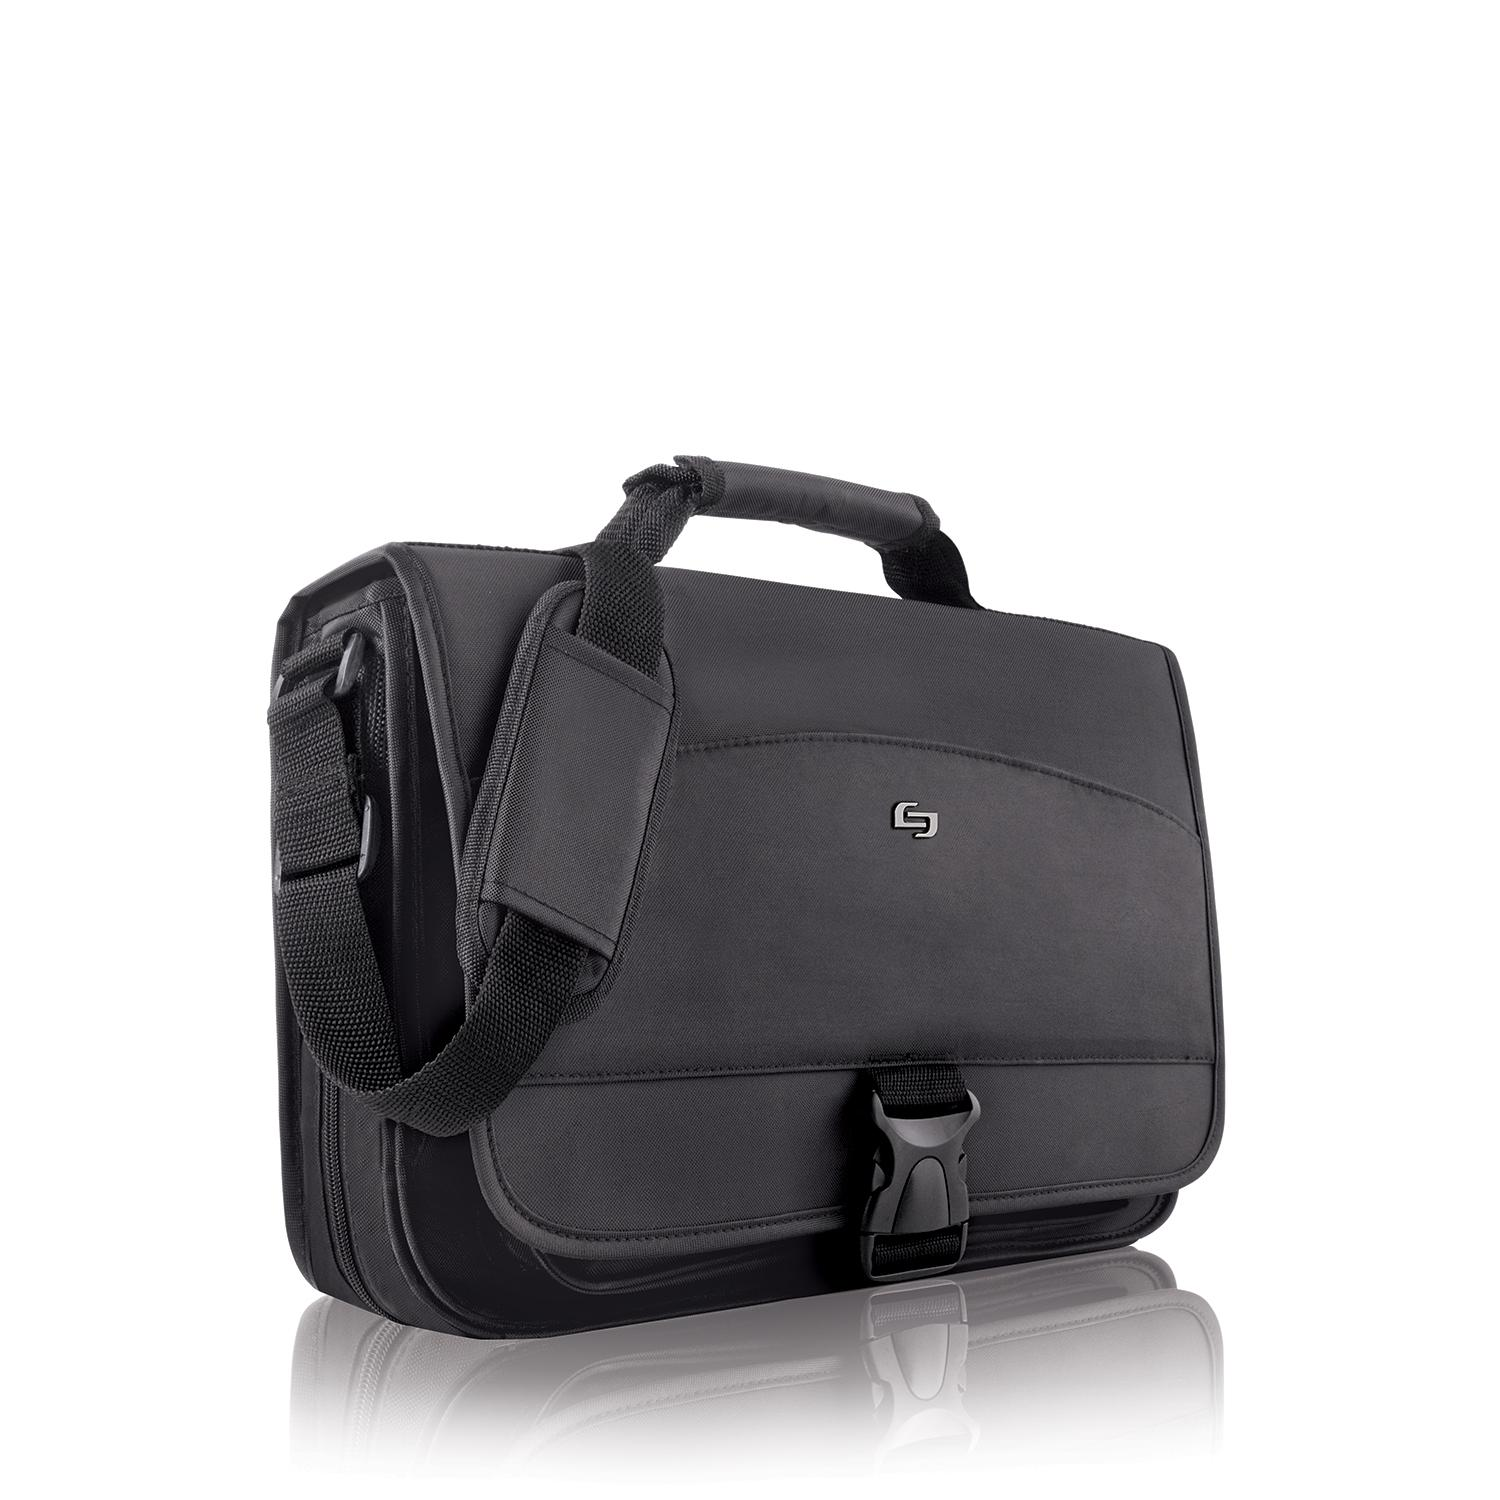 eded4ae5c2fe Solo Conquer 15.6 Inch Expandable Laptop Messenger, Black